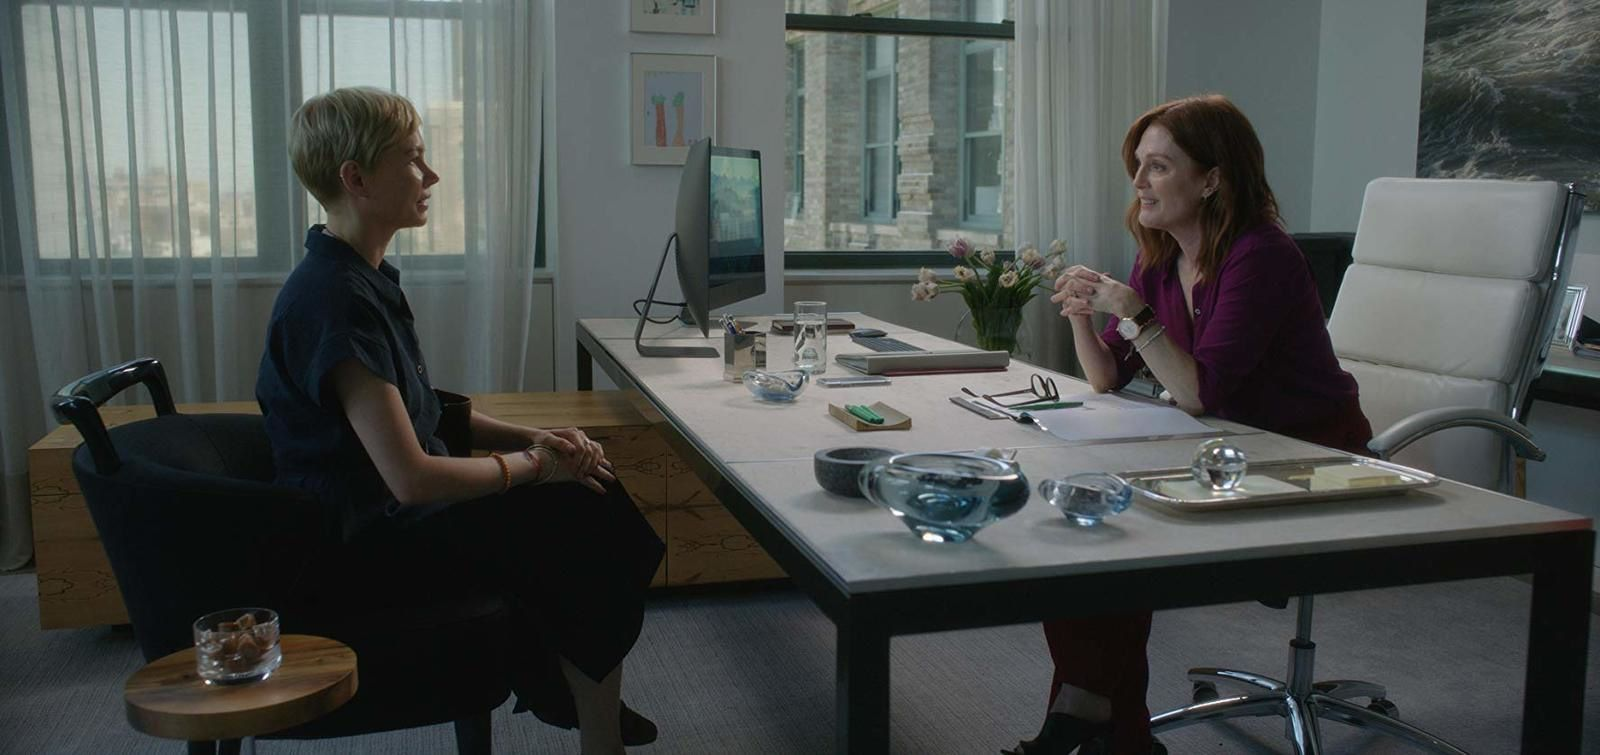 After The Wedding (BANDE-ANNONCE) avec Michelle Williams, Julianne Moore, Billy Crudup